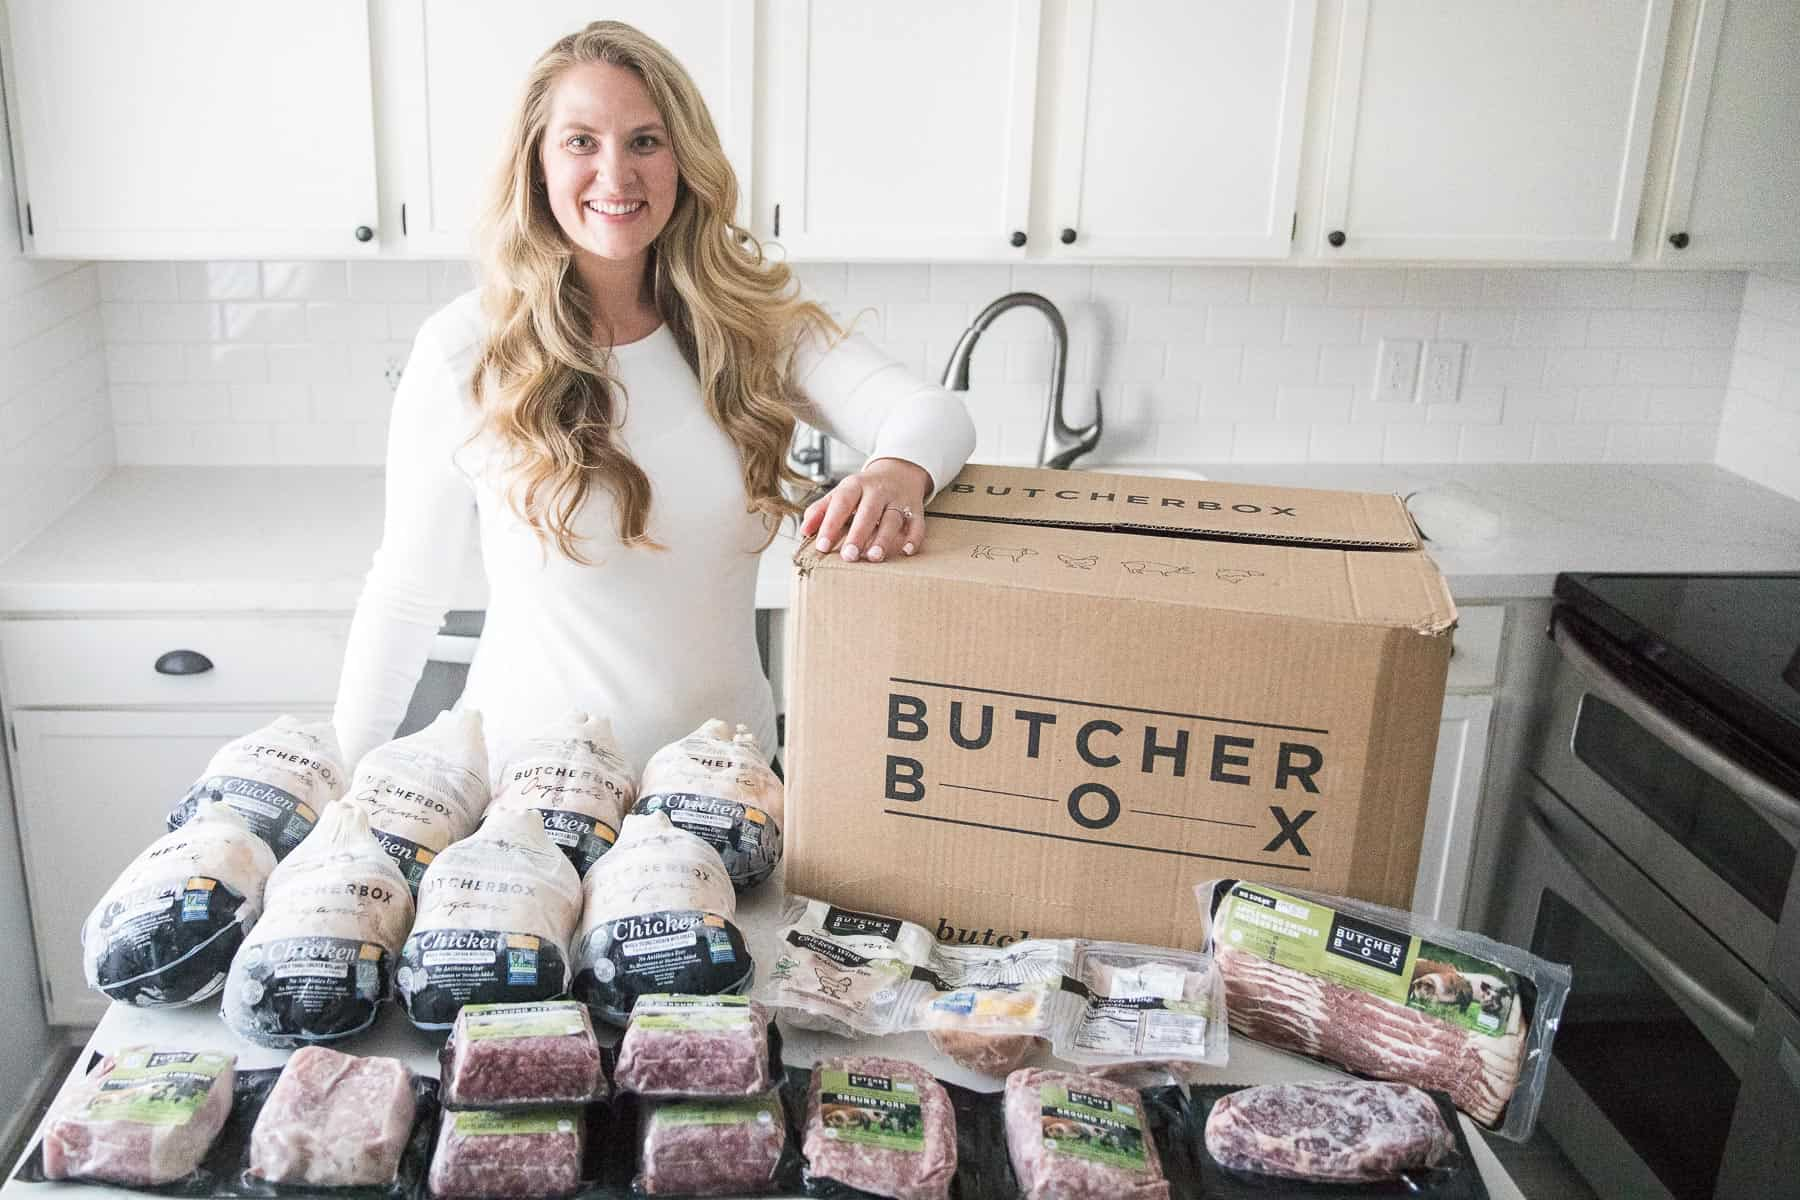 girl standing with a butcherbox order of meat